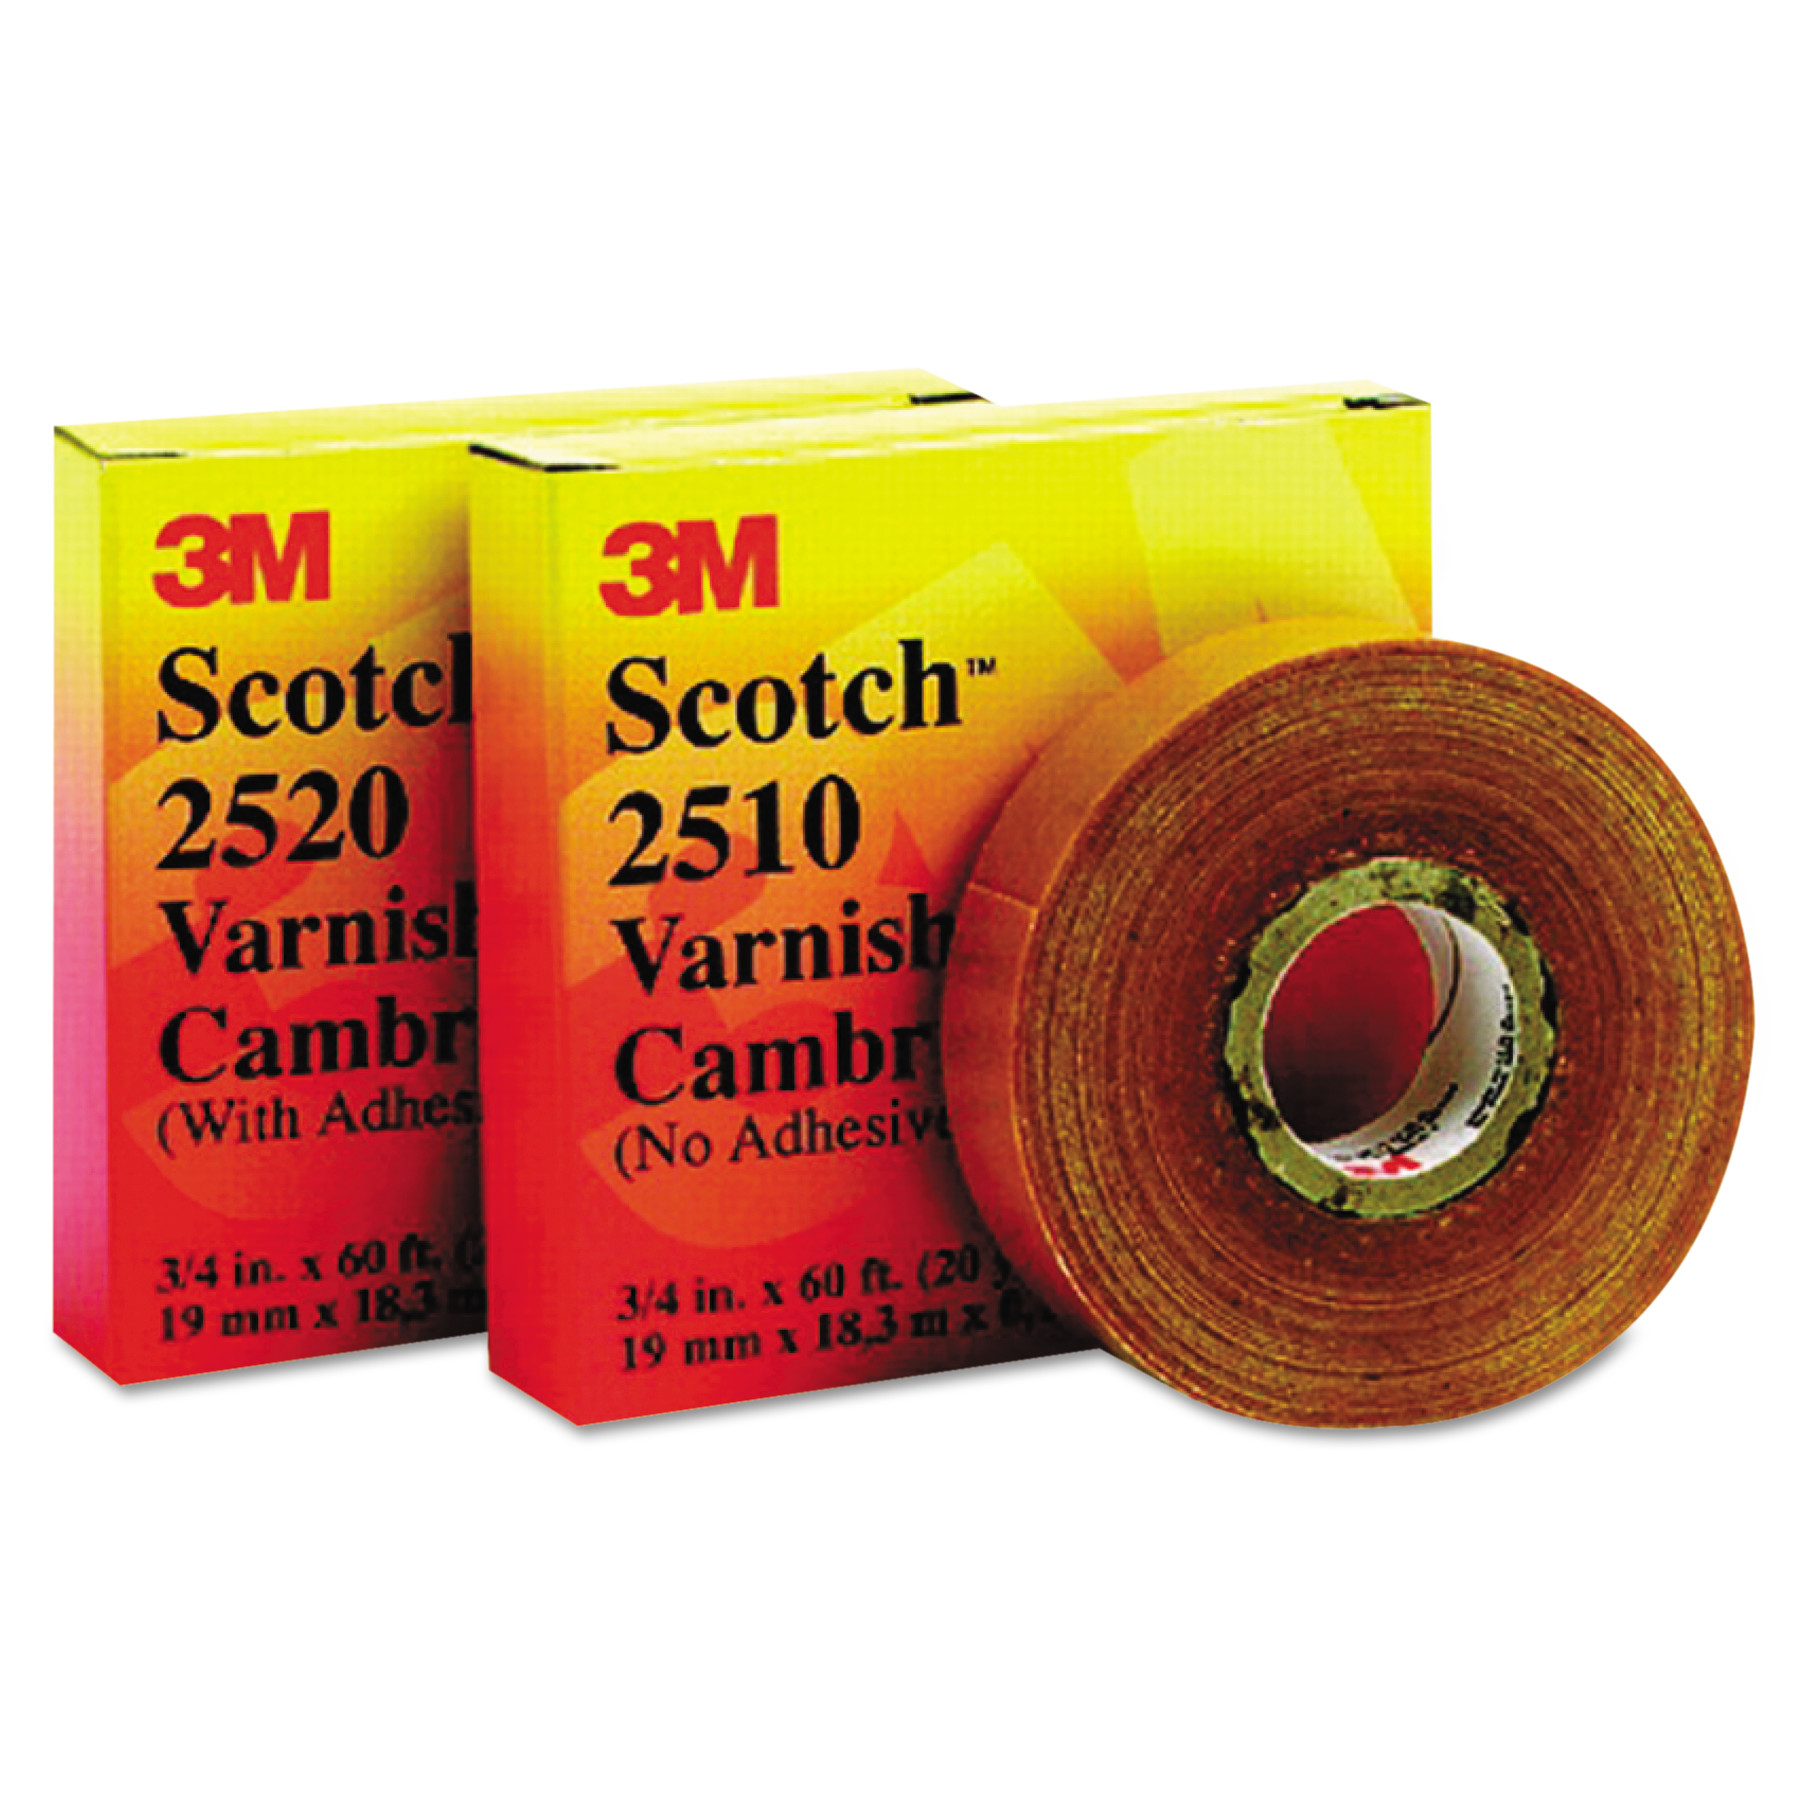 "3M Scotch 2520 Varnished Cambric Tape, 3/4"" x 60ft -MMM04836"